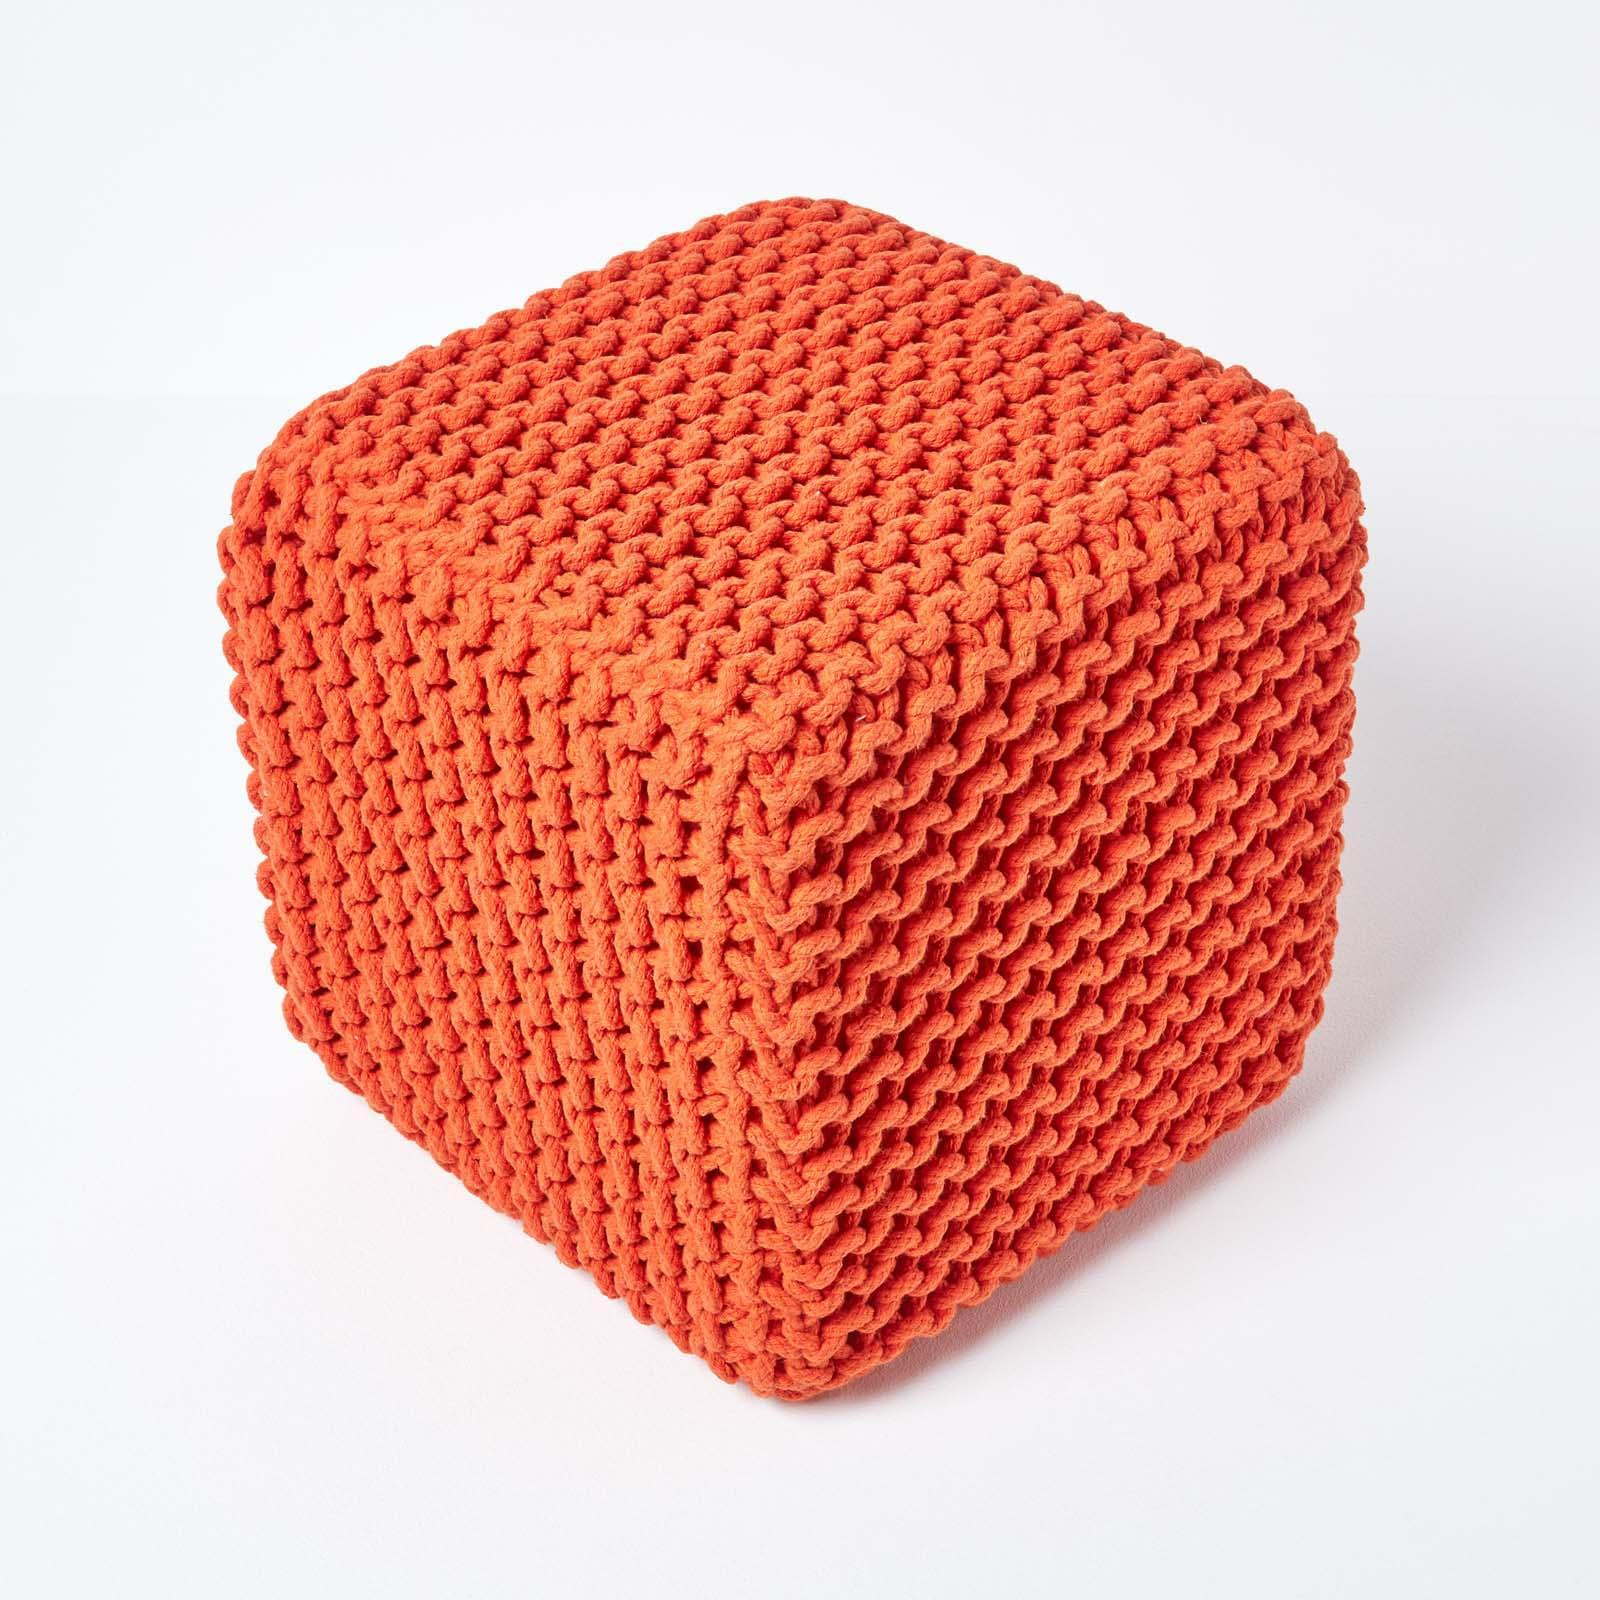 Hand-Knitted-100-Cotton-Pouffes-Round-Sphere-Or-Cube-Square-Chunky-Footstools thumbnail 123